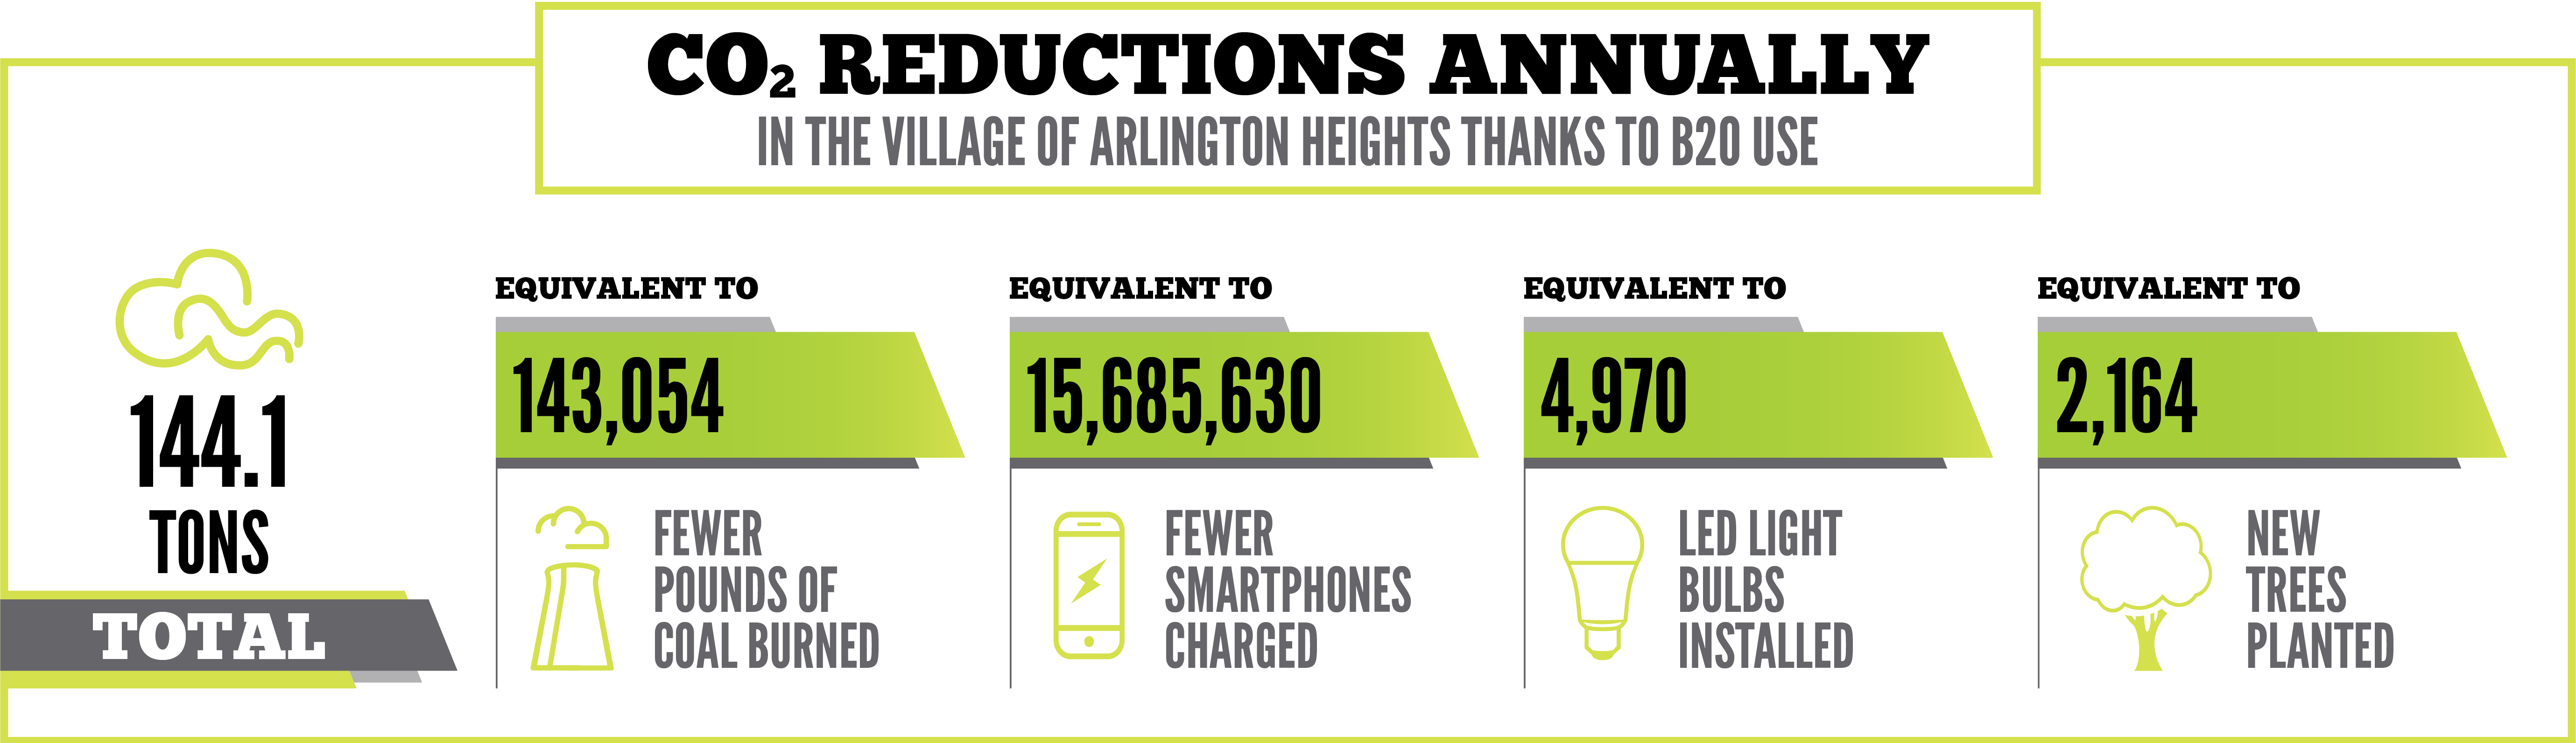 Arlington Heights Facts